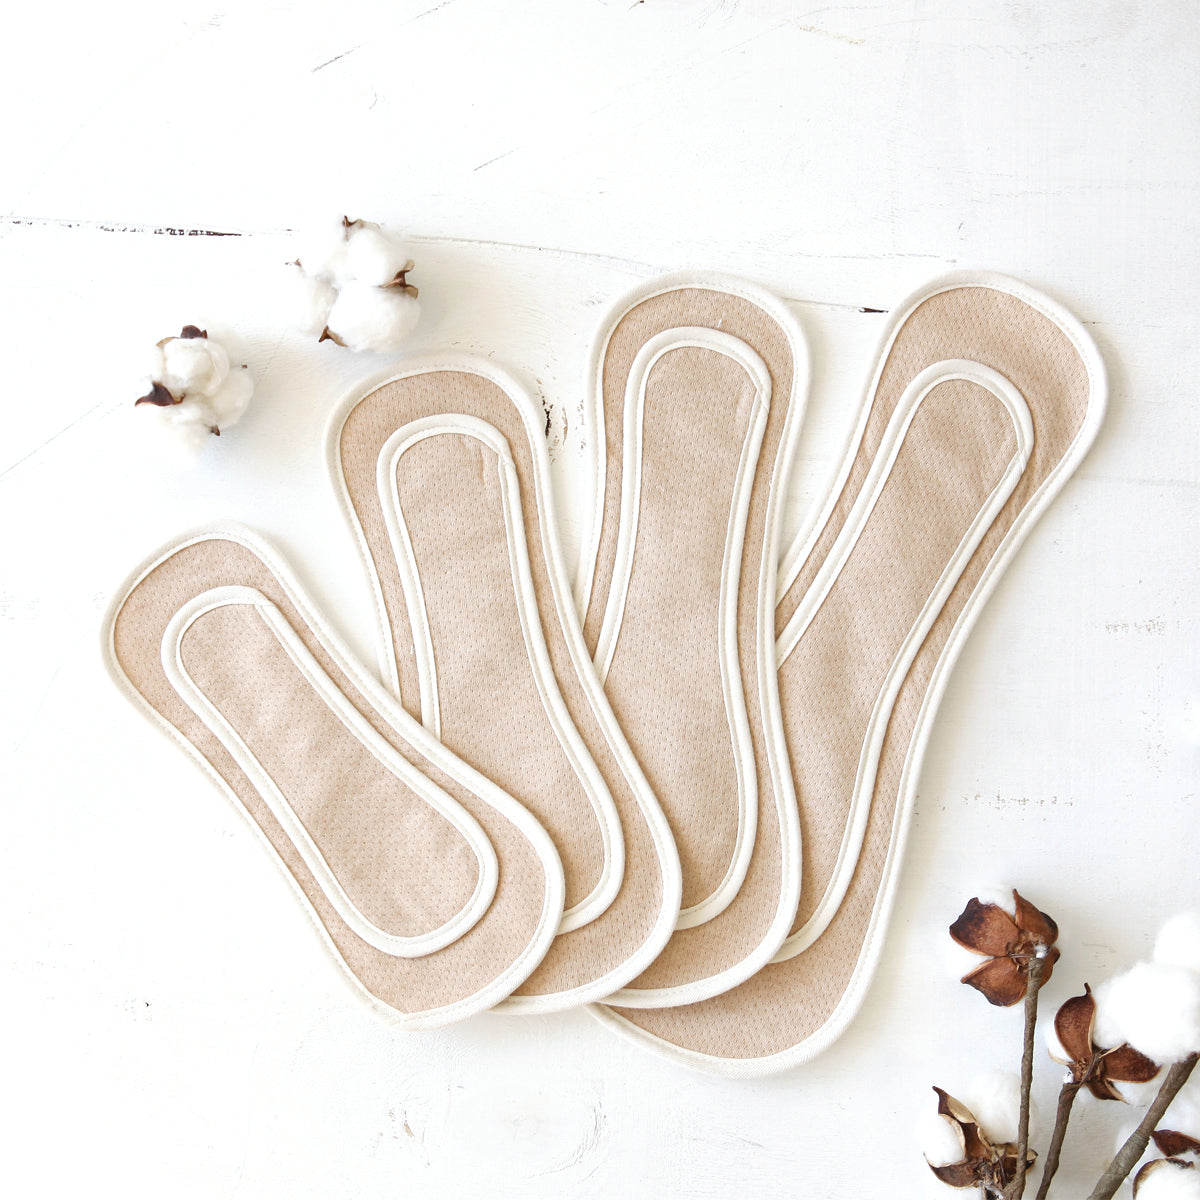 ORGANIC COTTON REUSABLE NATURAL SANITARY PAD (WING FREE/BROWN) SET OF 3